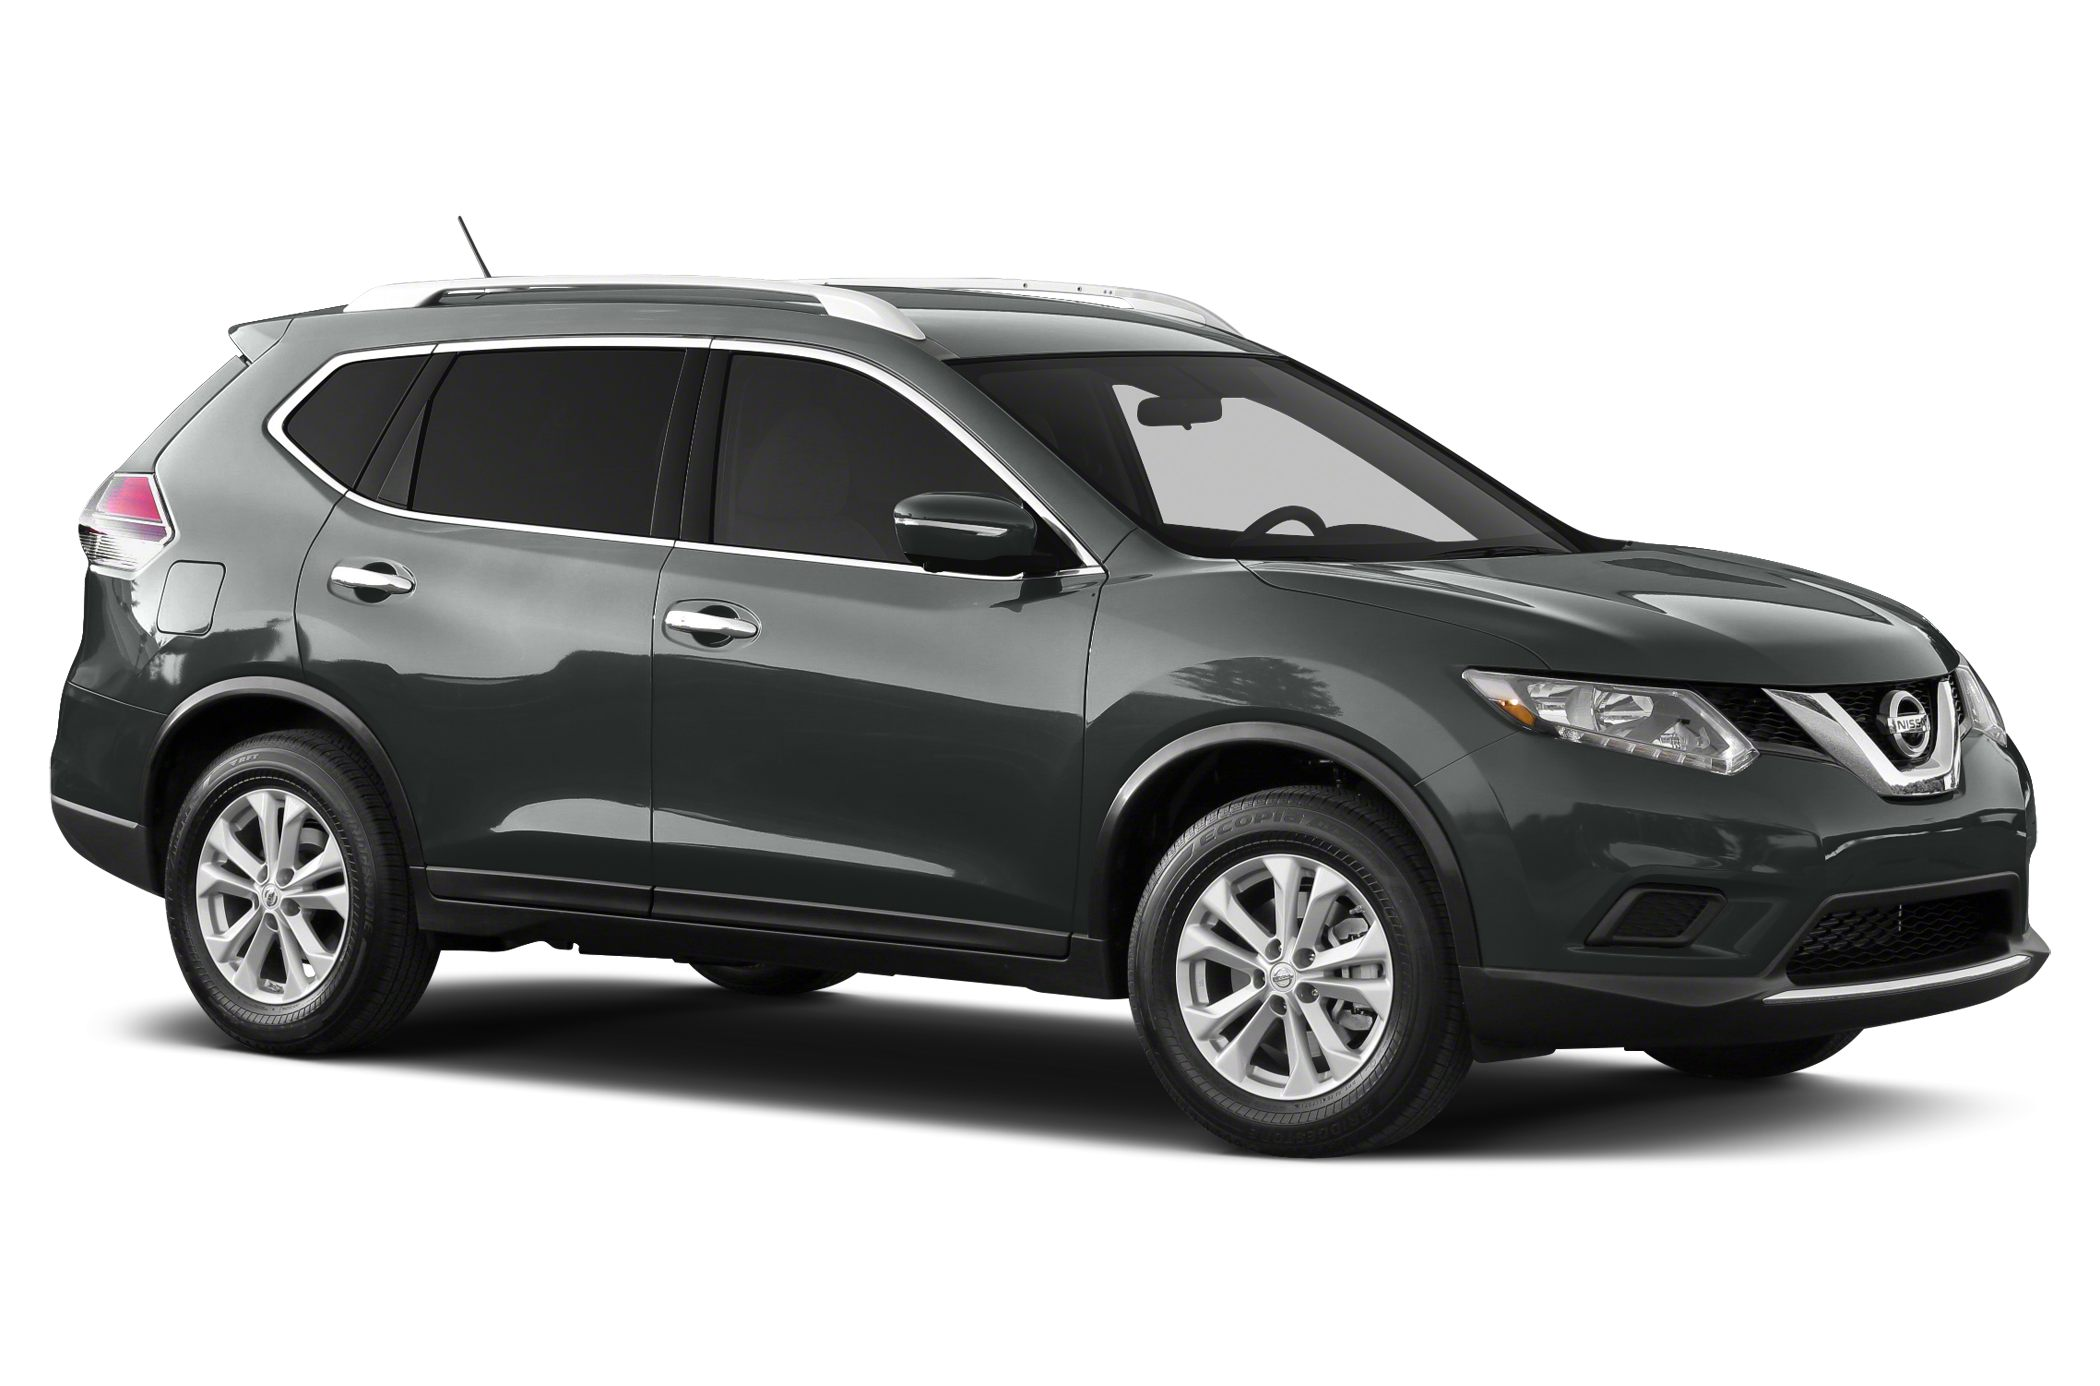 2014-Nissan-Rogue-SUV-S-4dr-Front-wheel-Drive-Photo-3.png